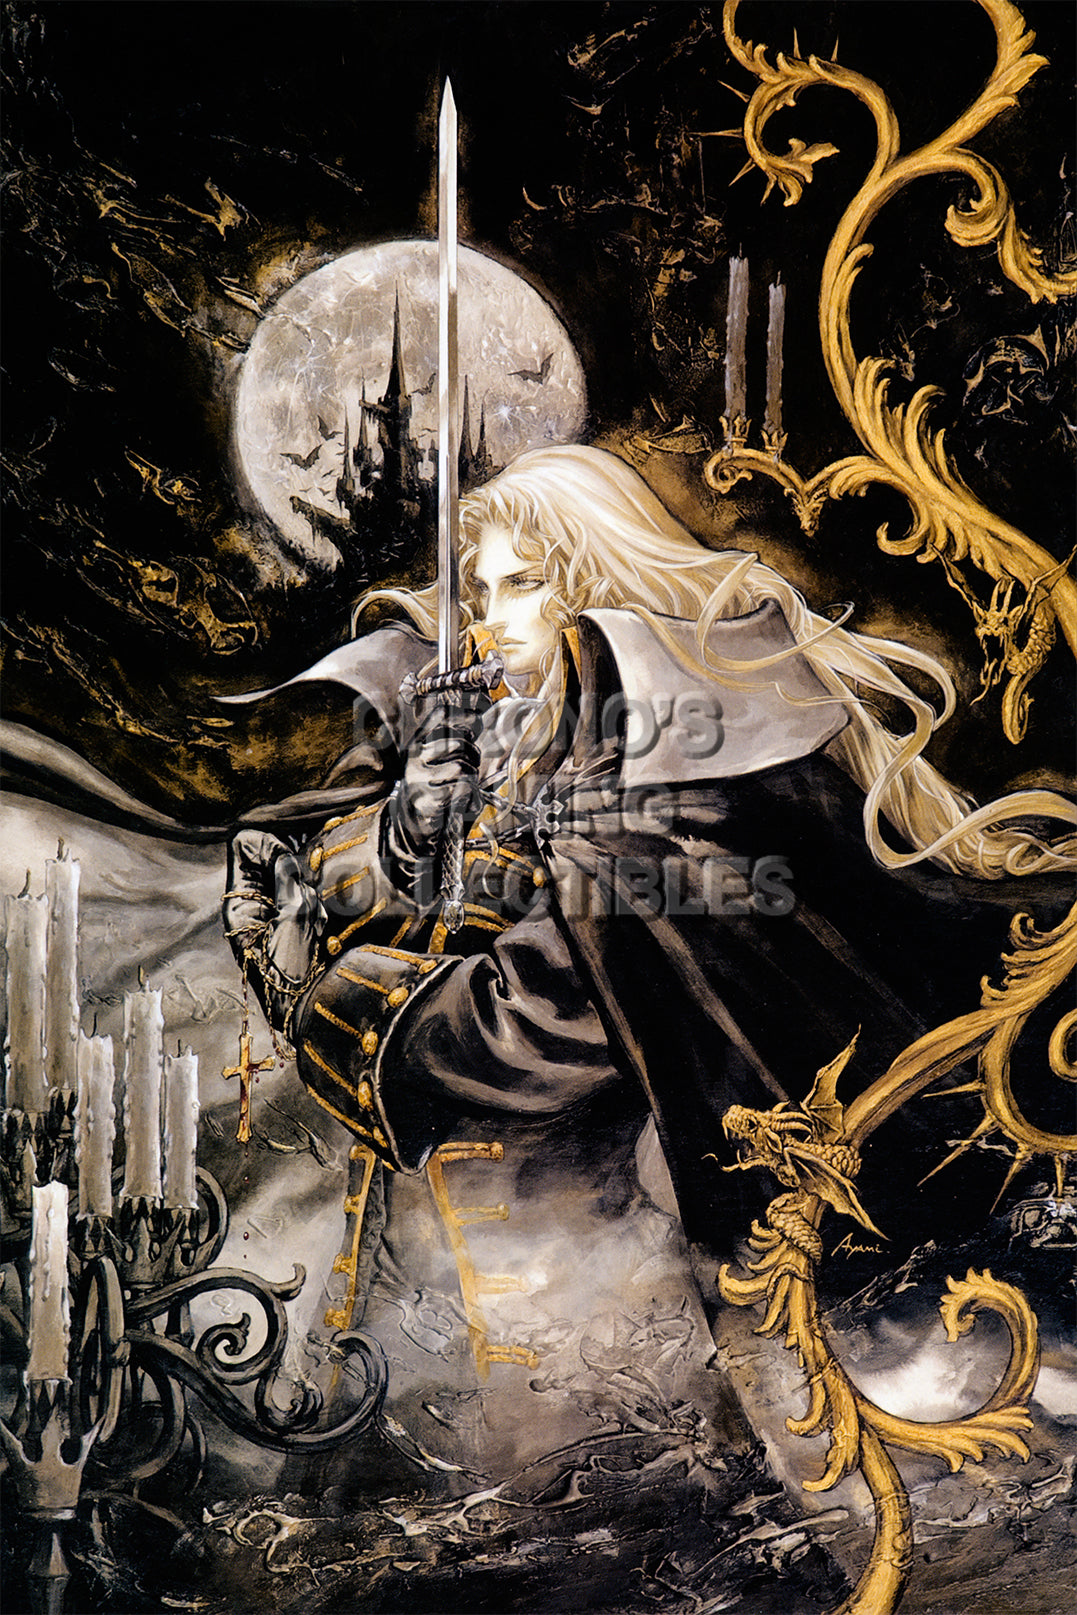 Castlevania Video Games Poster Cgcposters